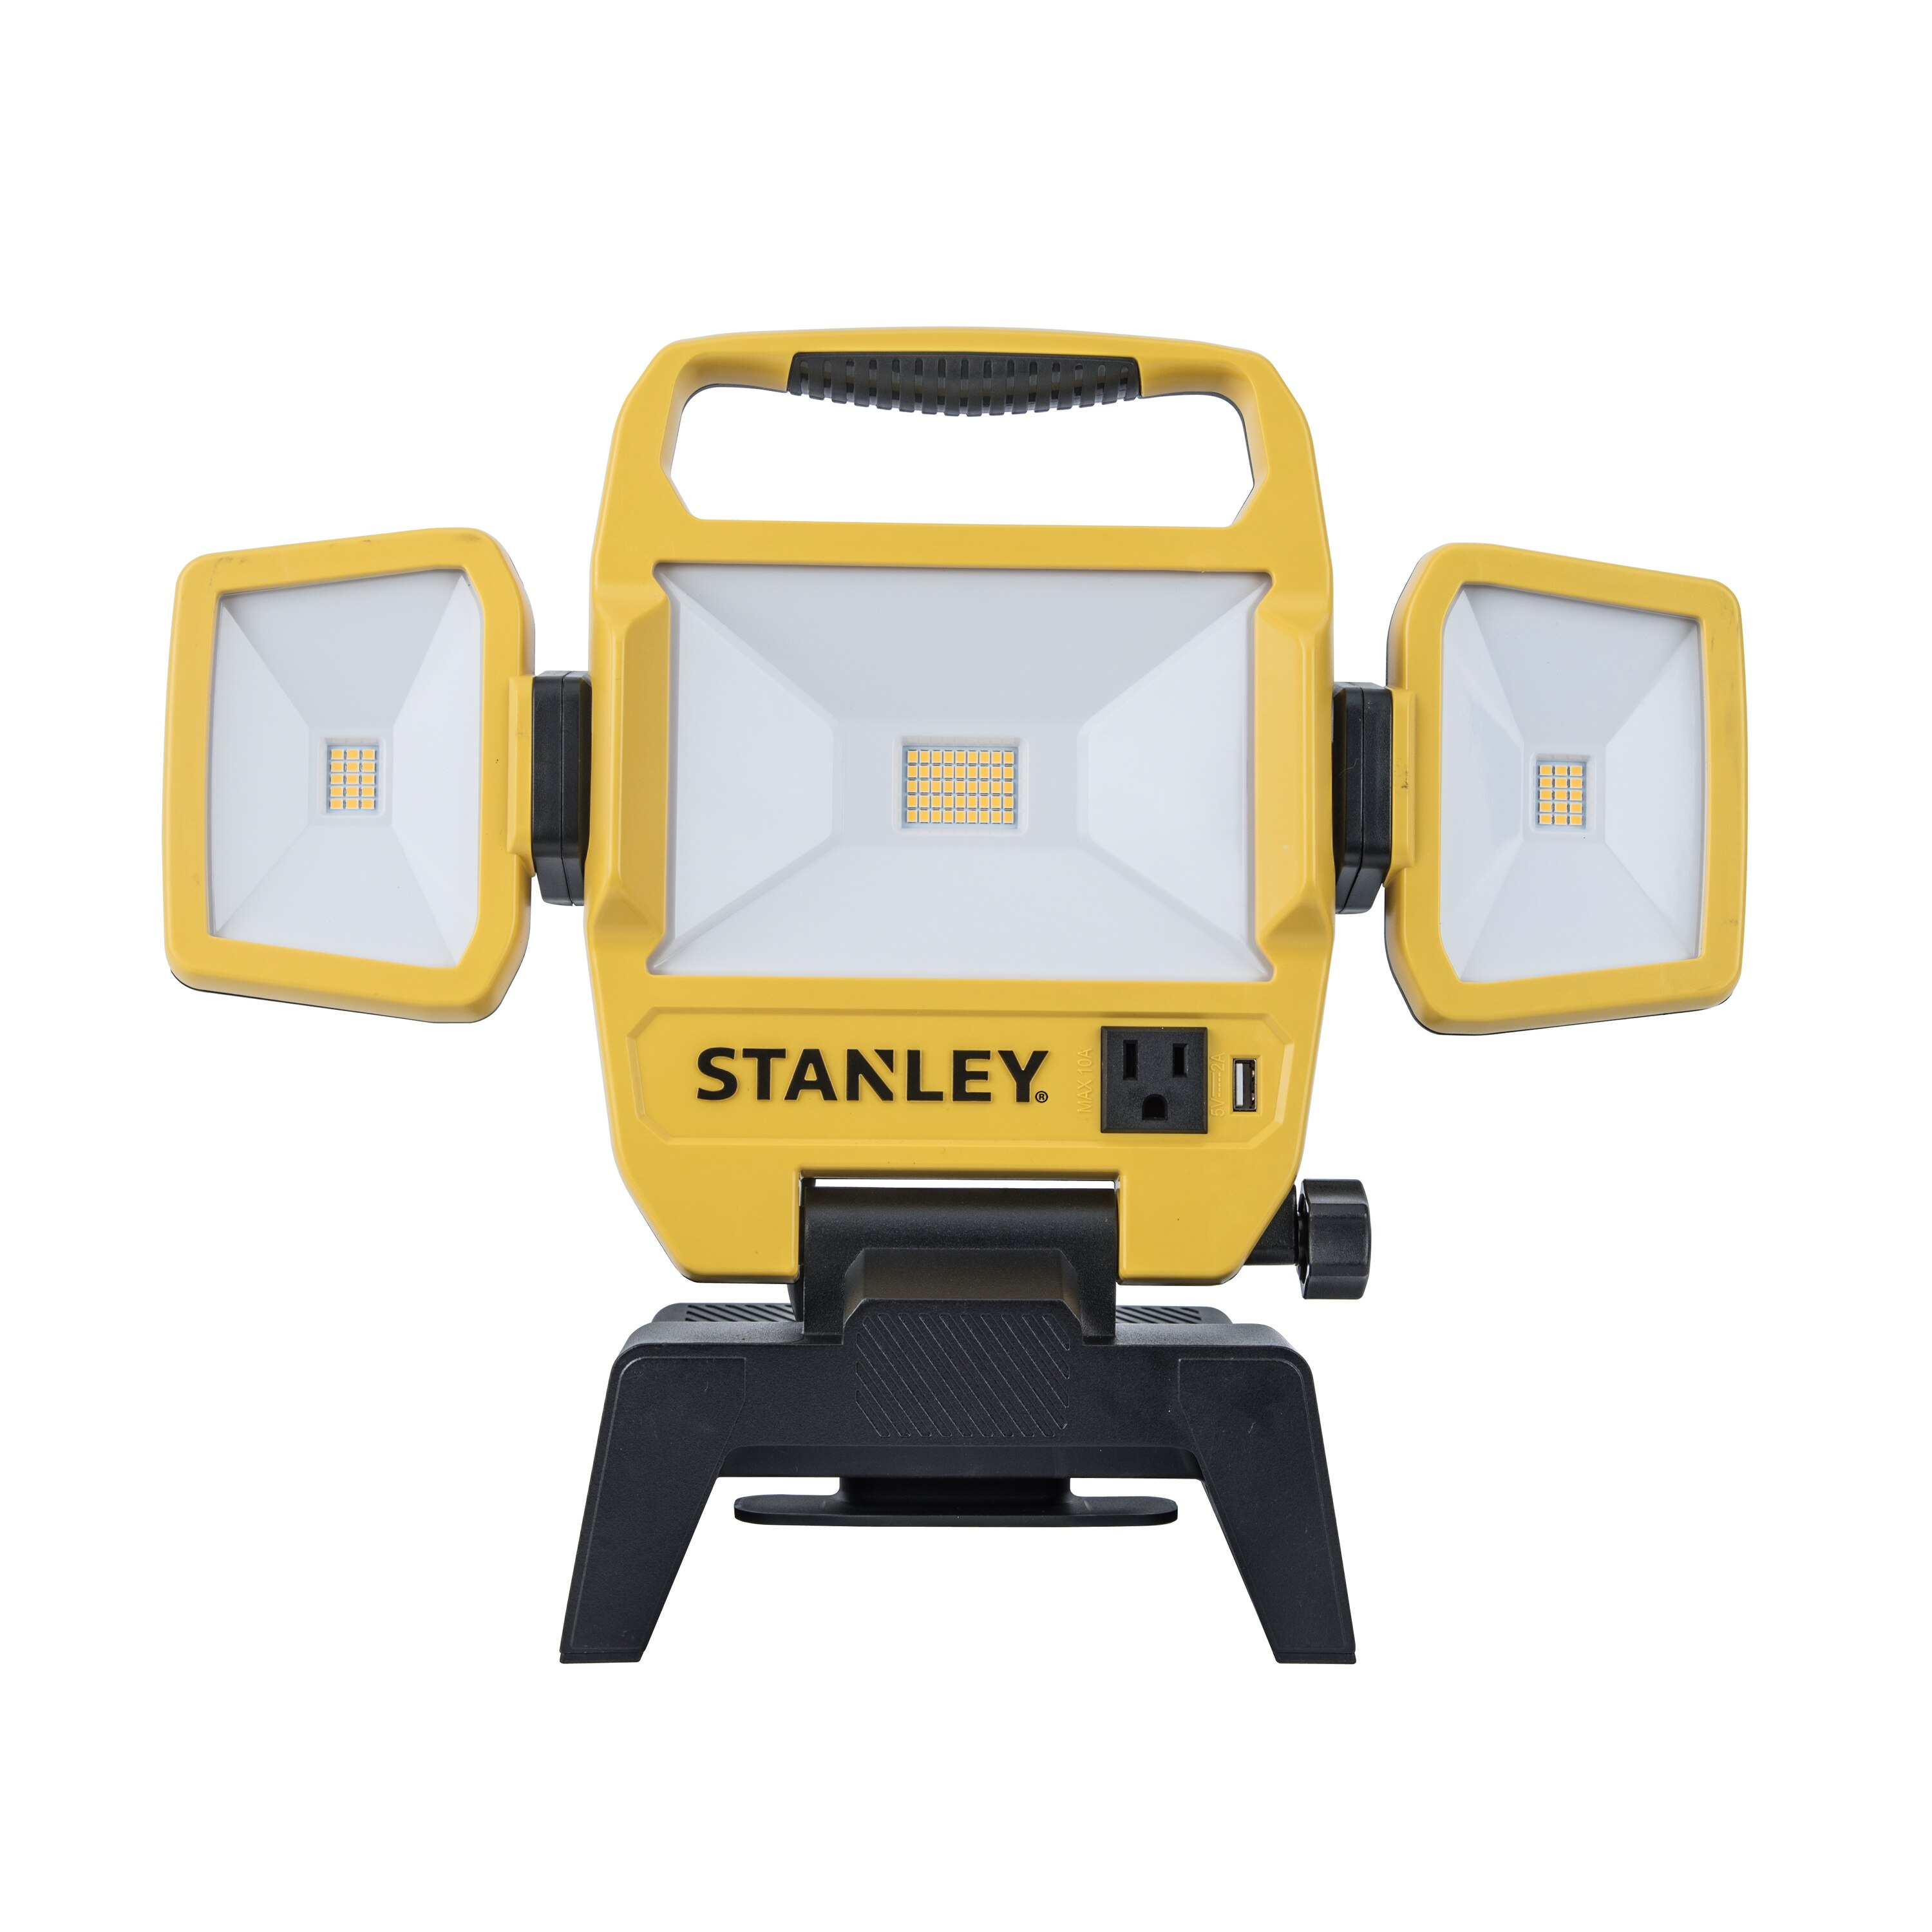 Stanley Tools - 5000 Lumens LED Corded Portable Work Light - 7629103430